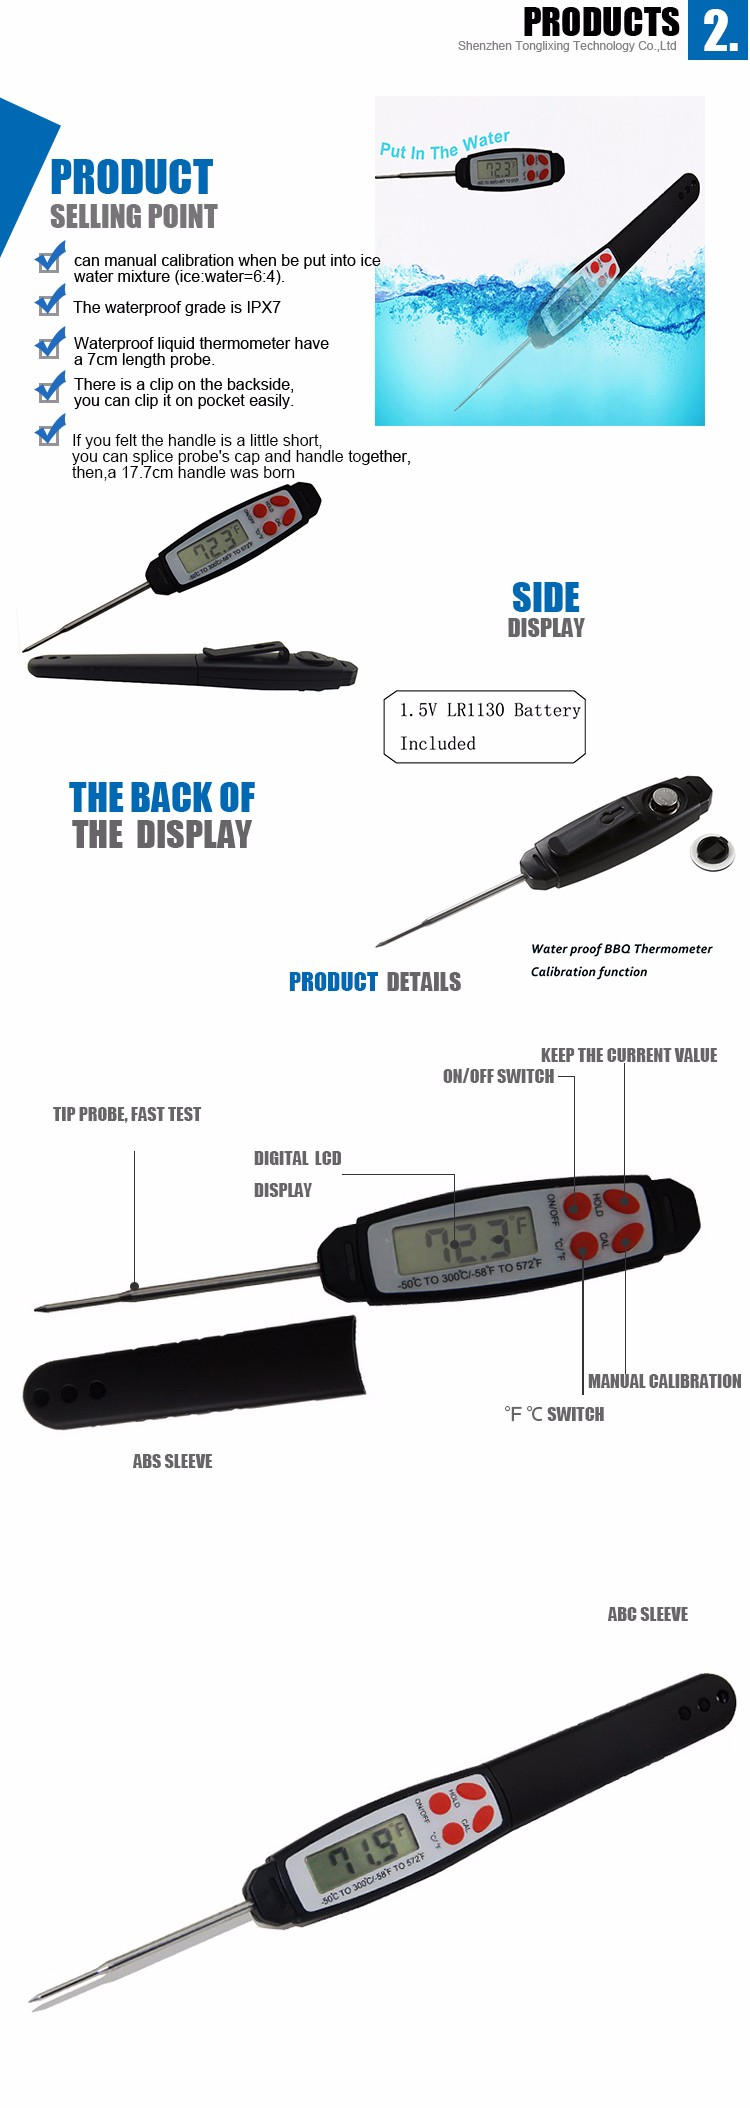 Waterproof Digital Thermometer With Probe Plastic Material Food Thermometer